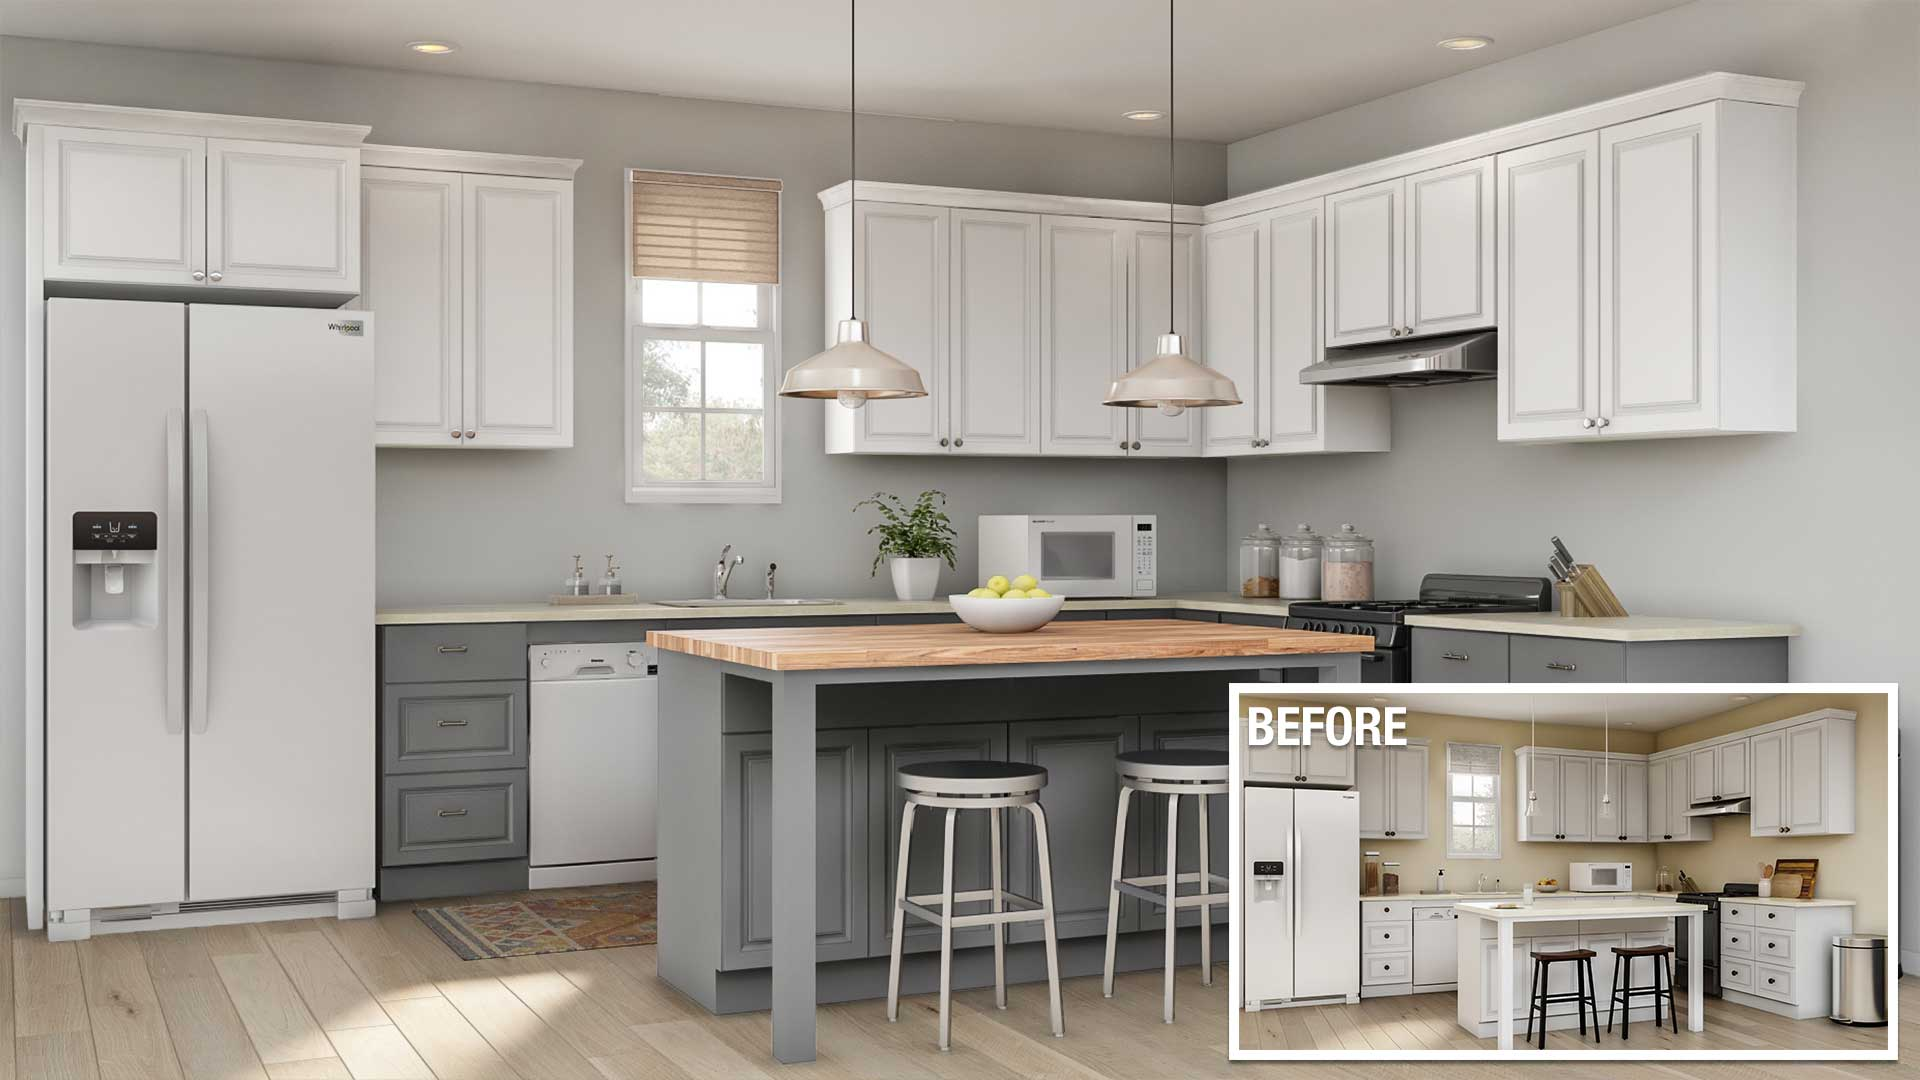 Home Depot Design Ideas: Cost To Remodel A Kitchen